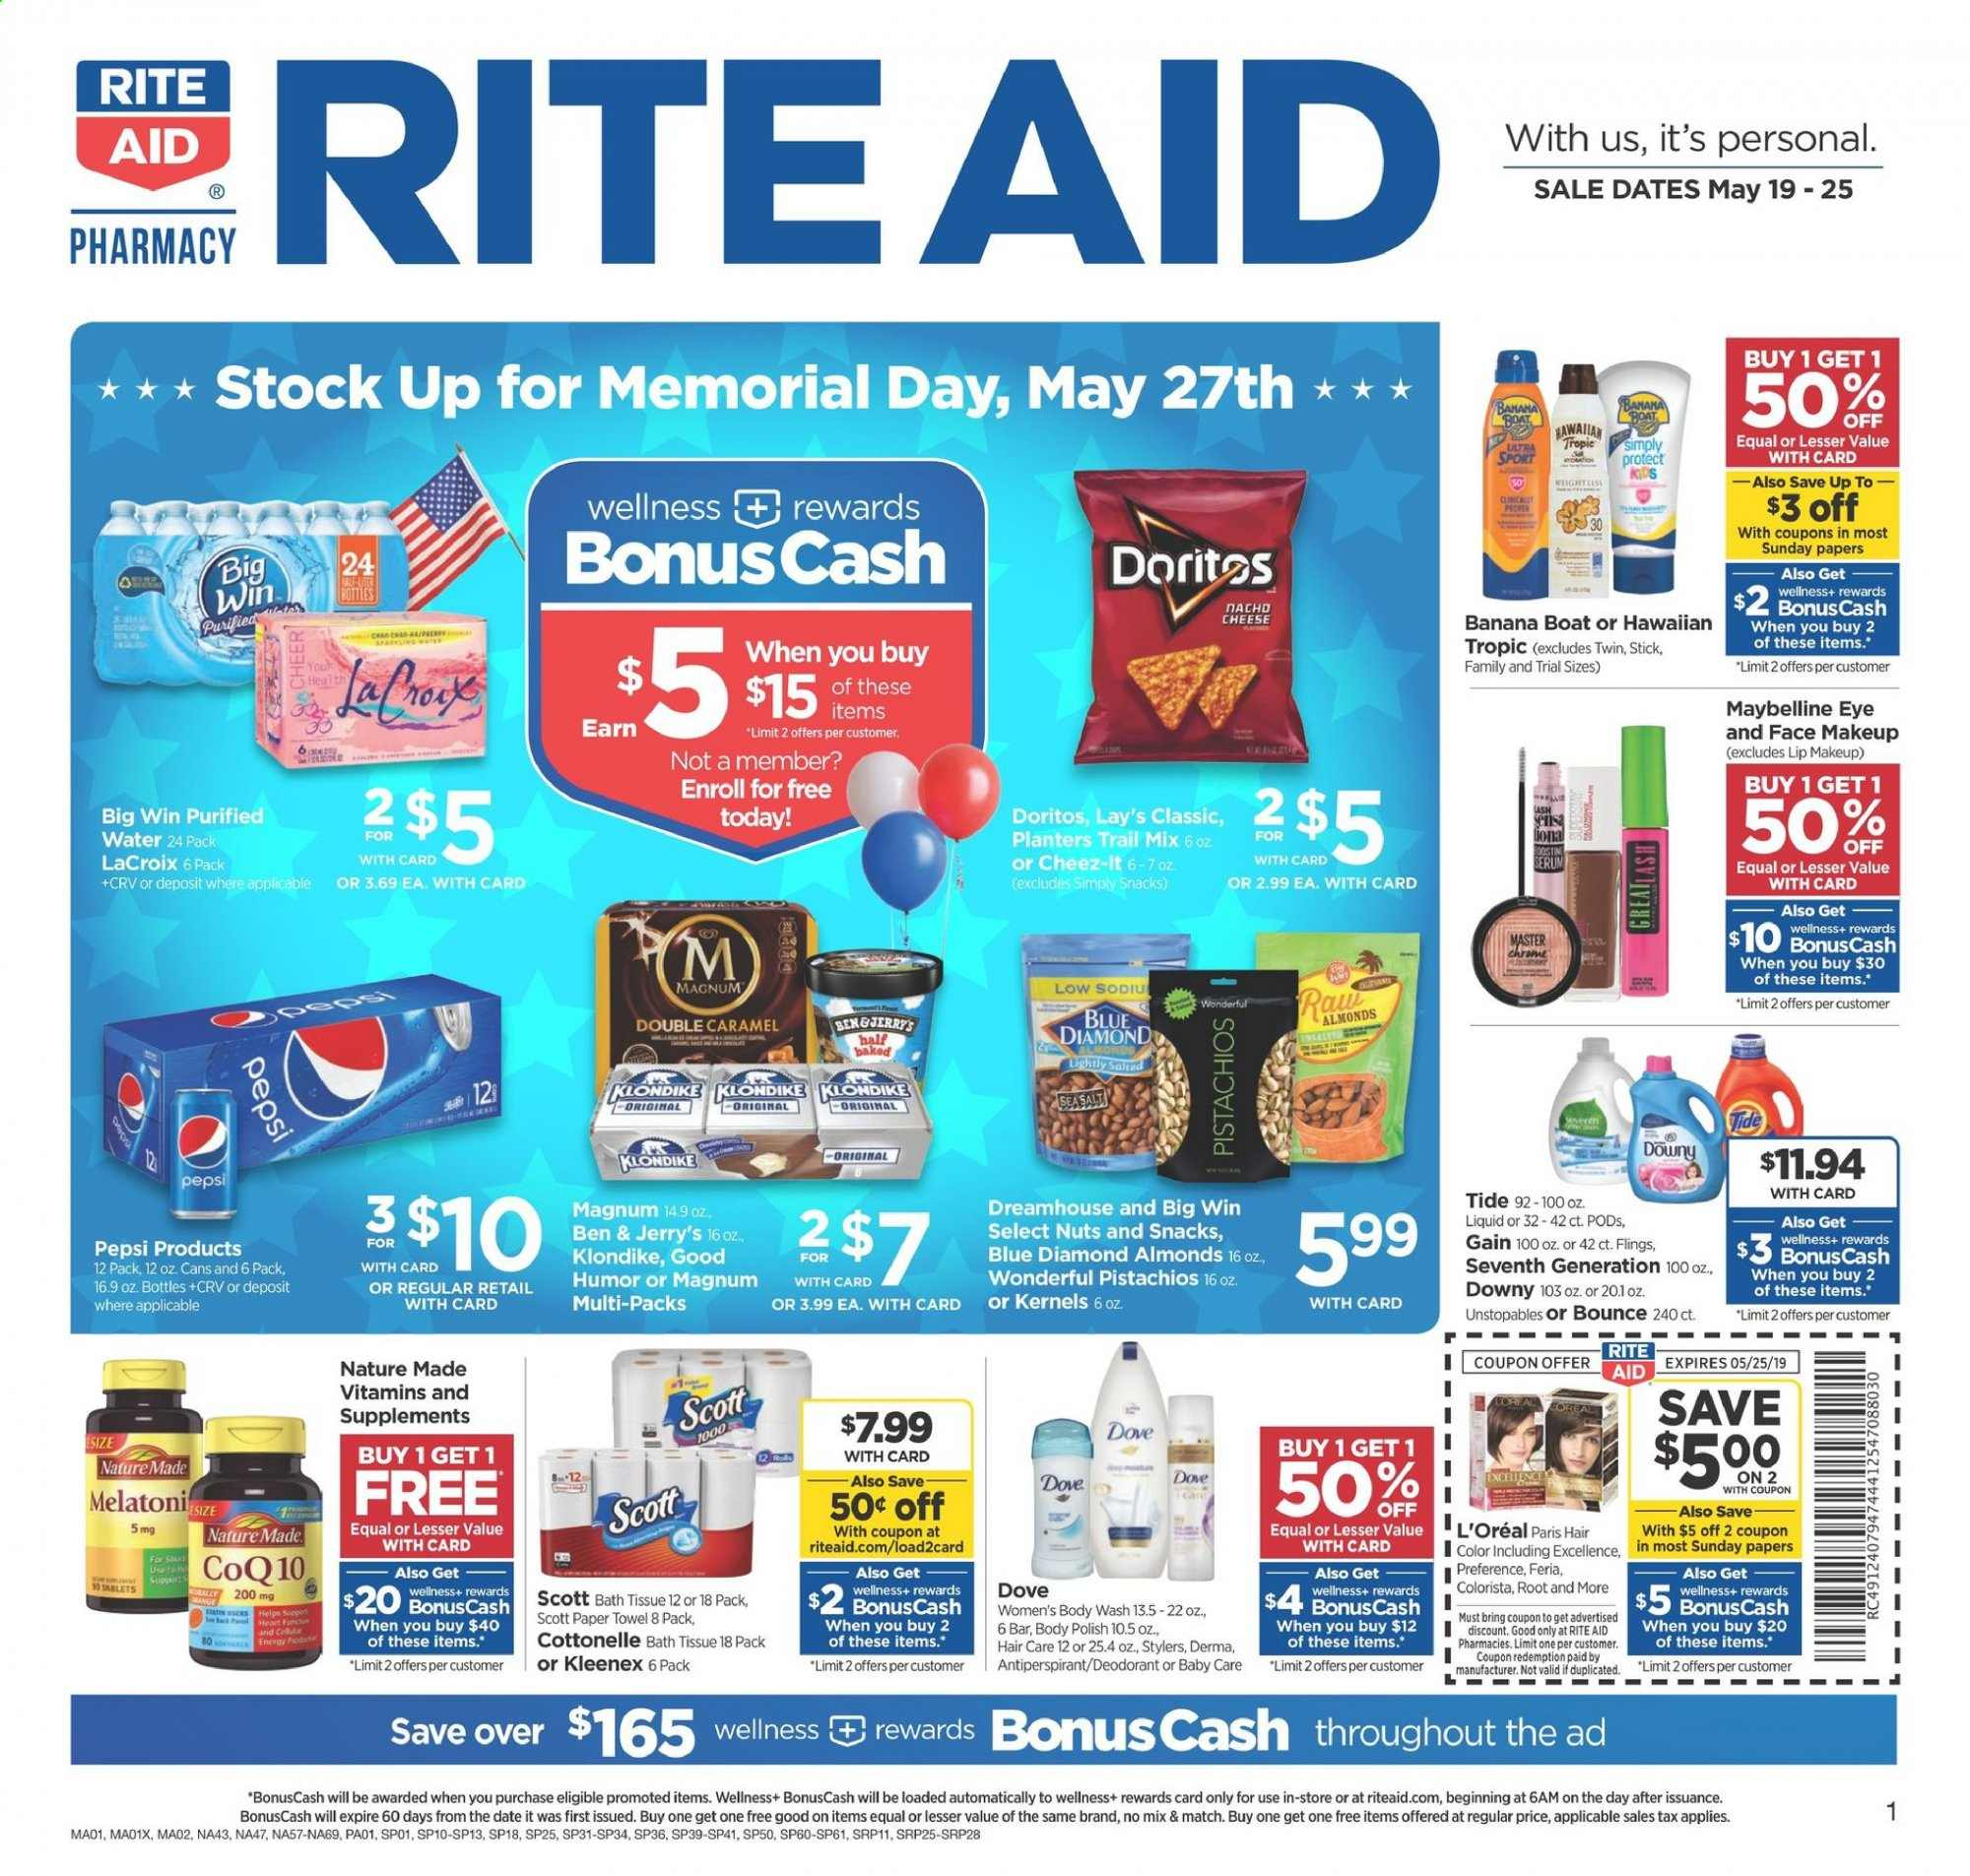 RITE AID Flyer - 05.19.2019 - 05.25.2019 - Sales products - Scott, Magnum, Doritos, snack, Lay's, almonds, nuts, Dove, bath tissue, Cottonelle, Kleenex, paper towel, Gain, Downy, Tide, Unstopables, body wash, L'Oréal, hair color, anti-perspirant, makeup, Maybelline, Nature Made. Page 1.